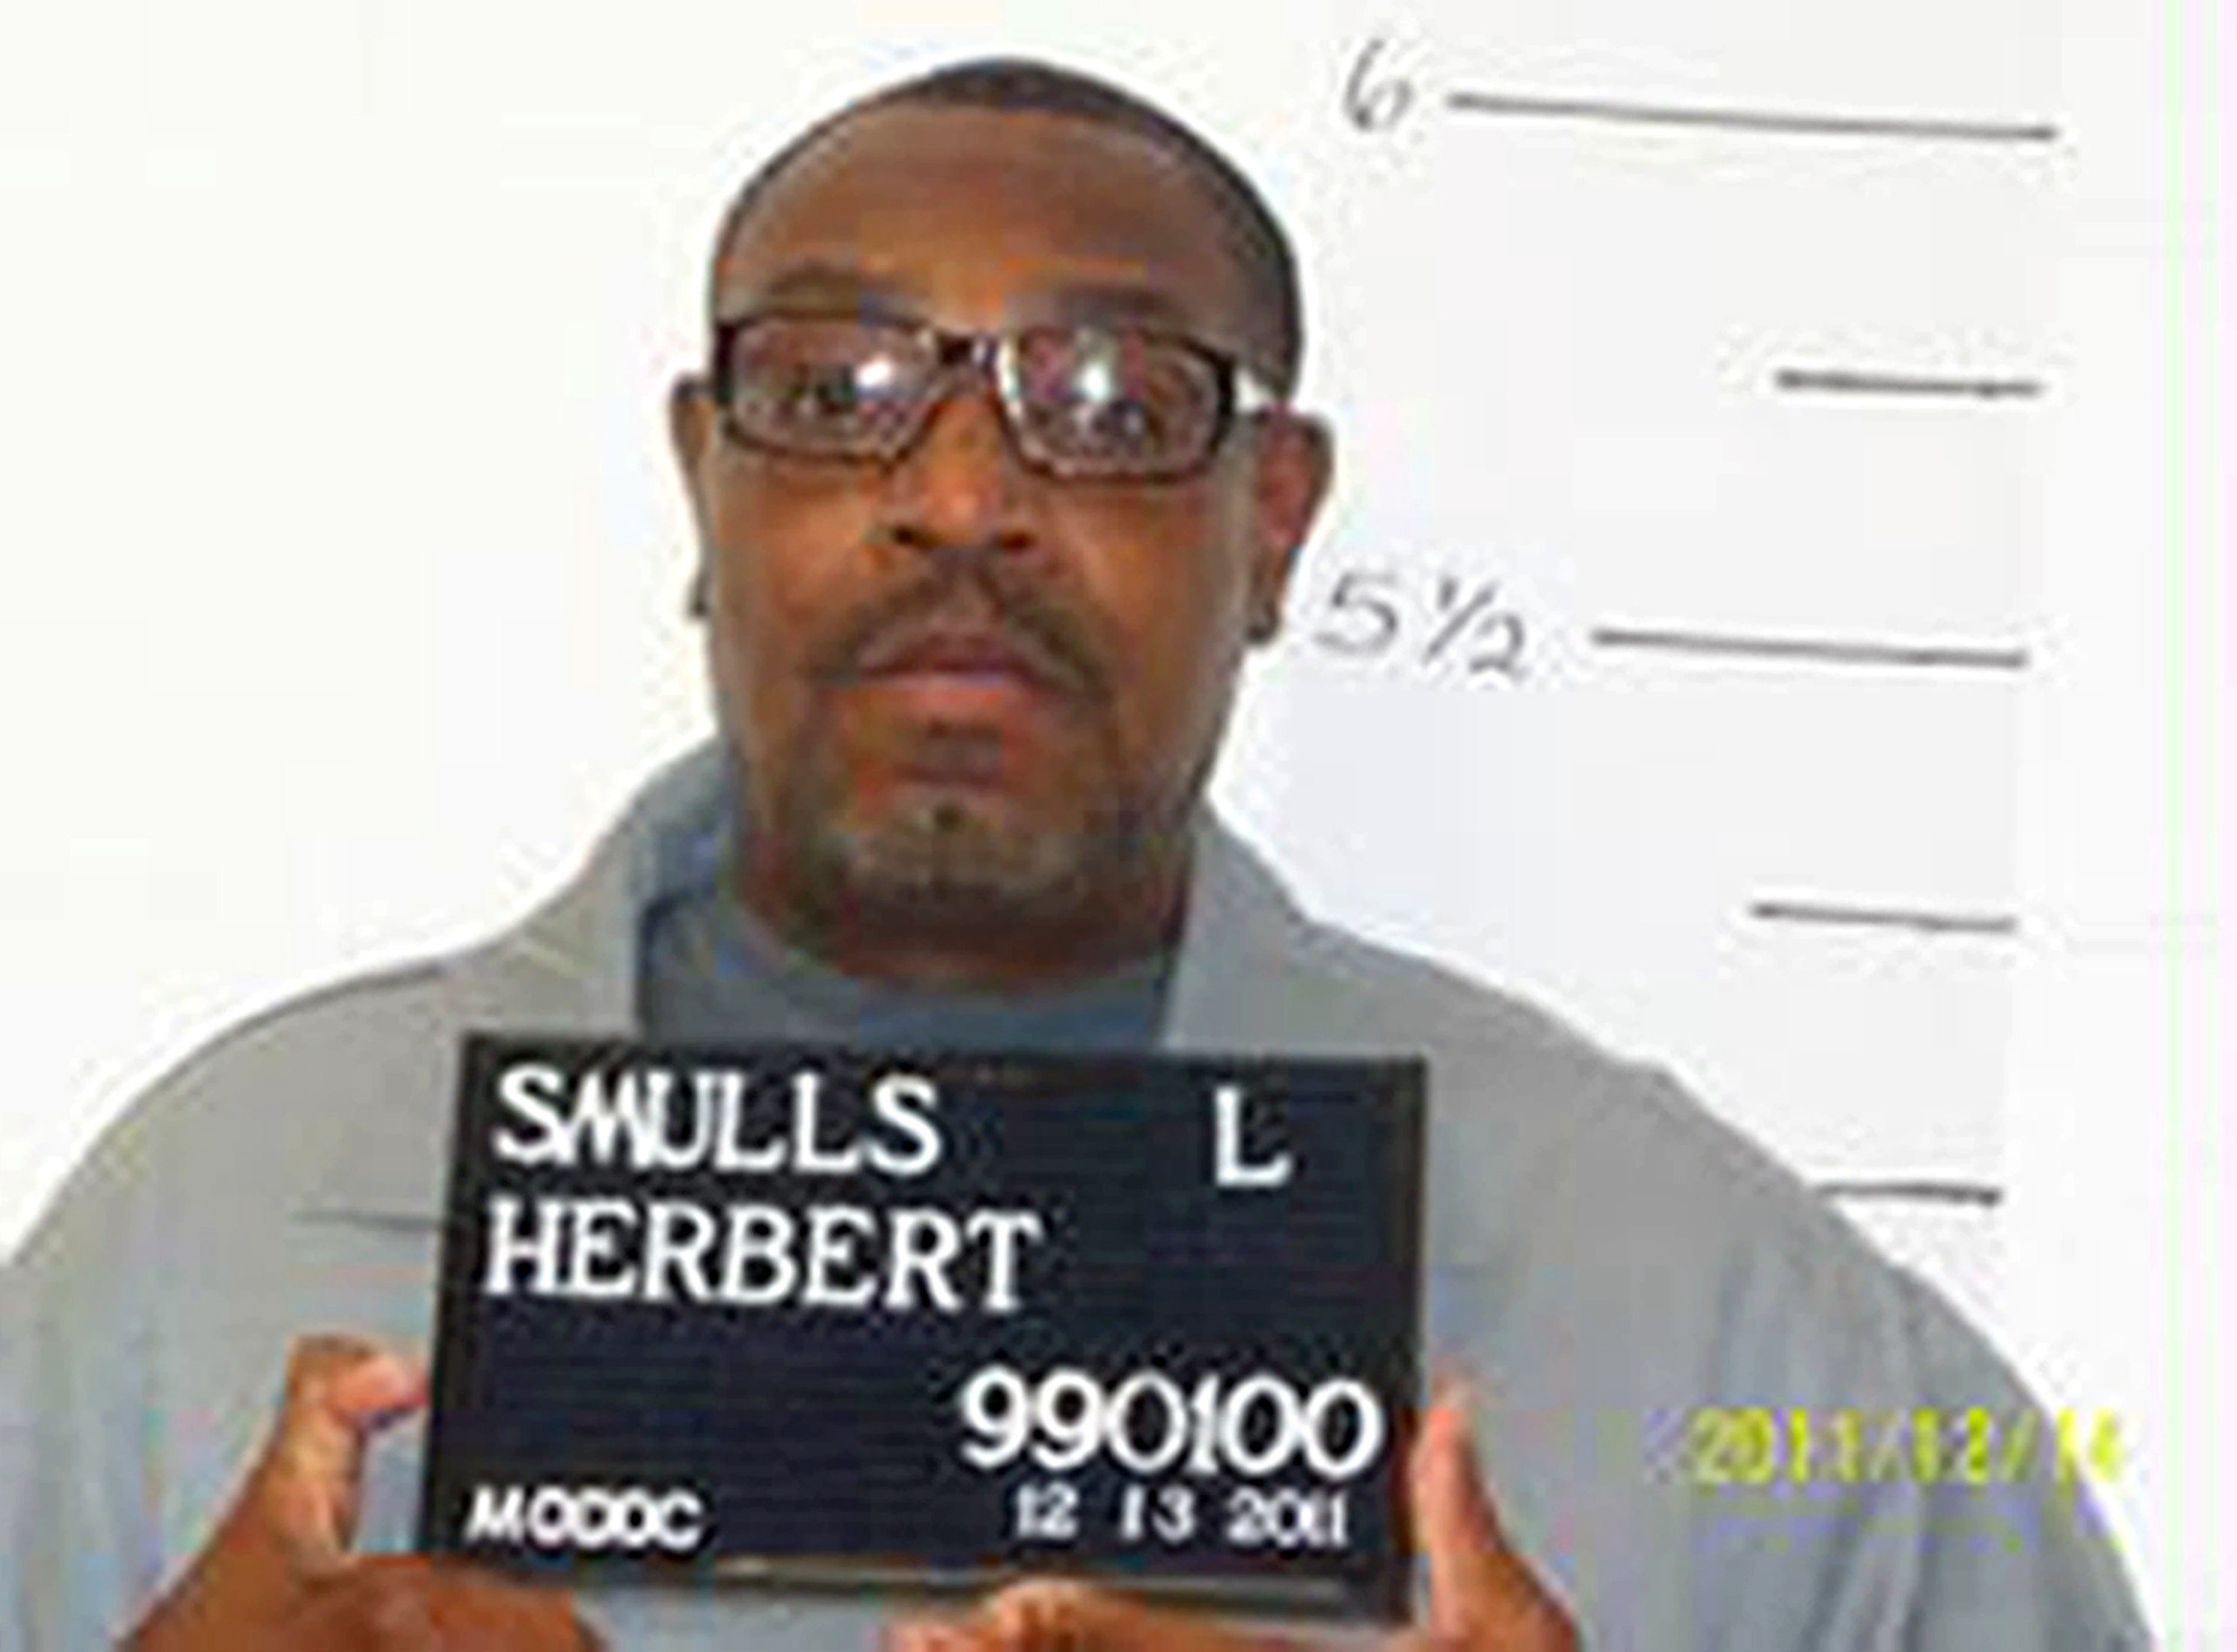 Supreme court orders stay of execution for missouri death row inmate